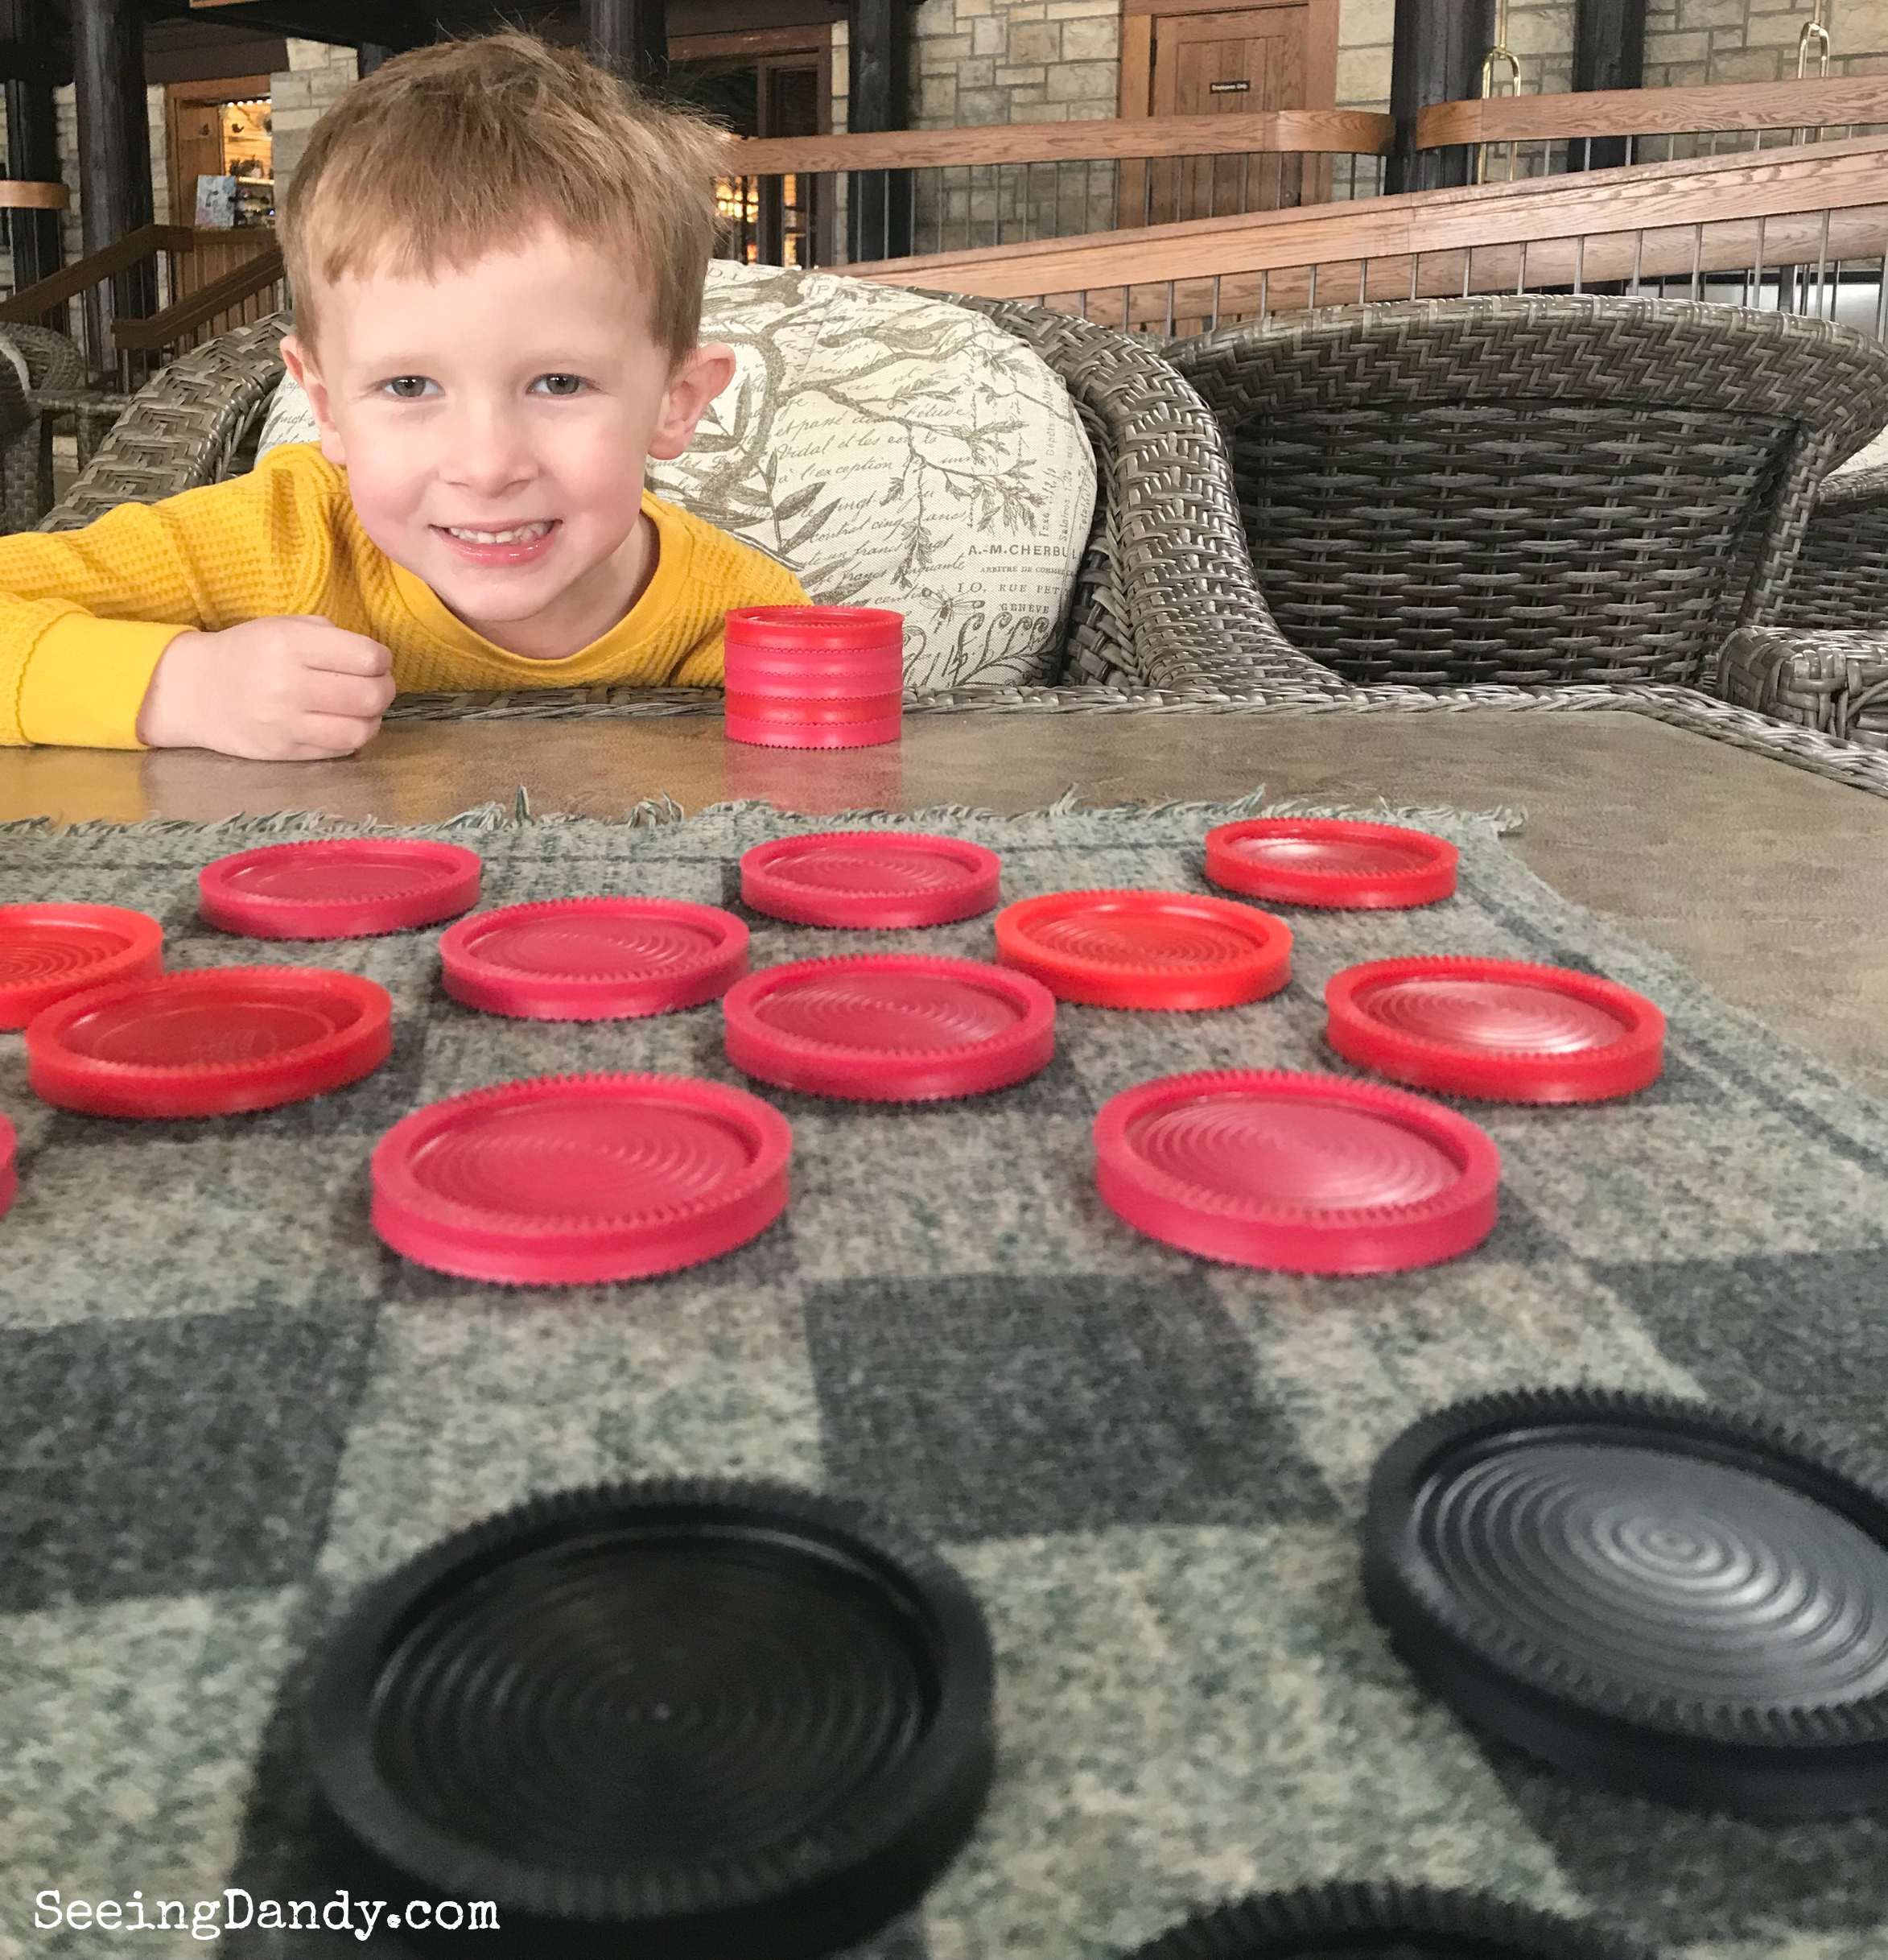 Boy playing giant checkers with fabric checker board at Pere Marquette Lodge in Grafton, IL.